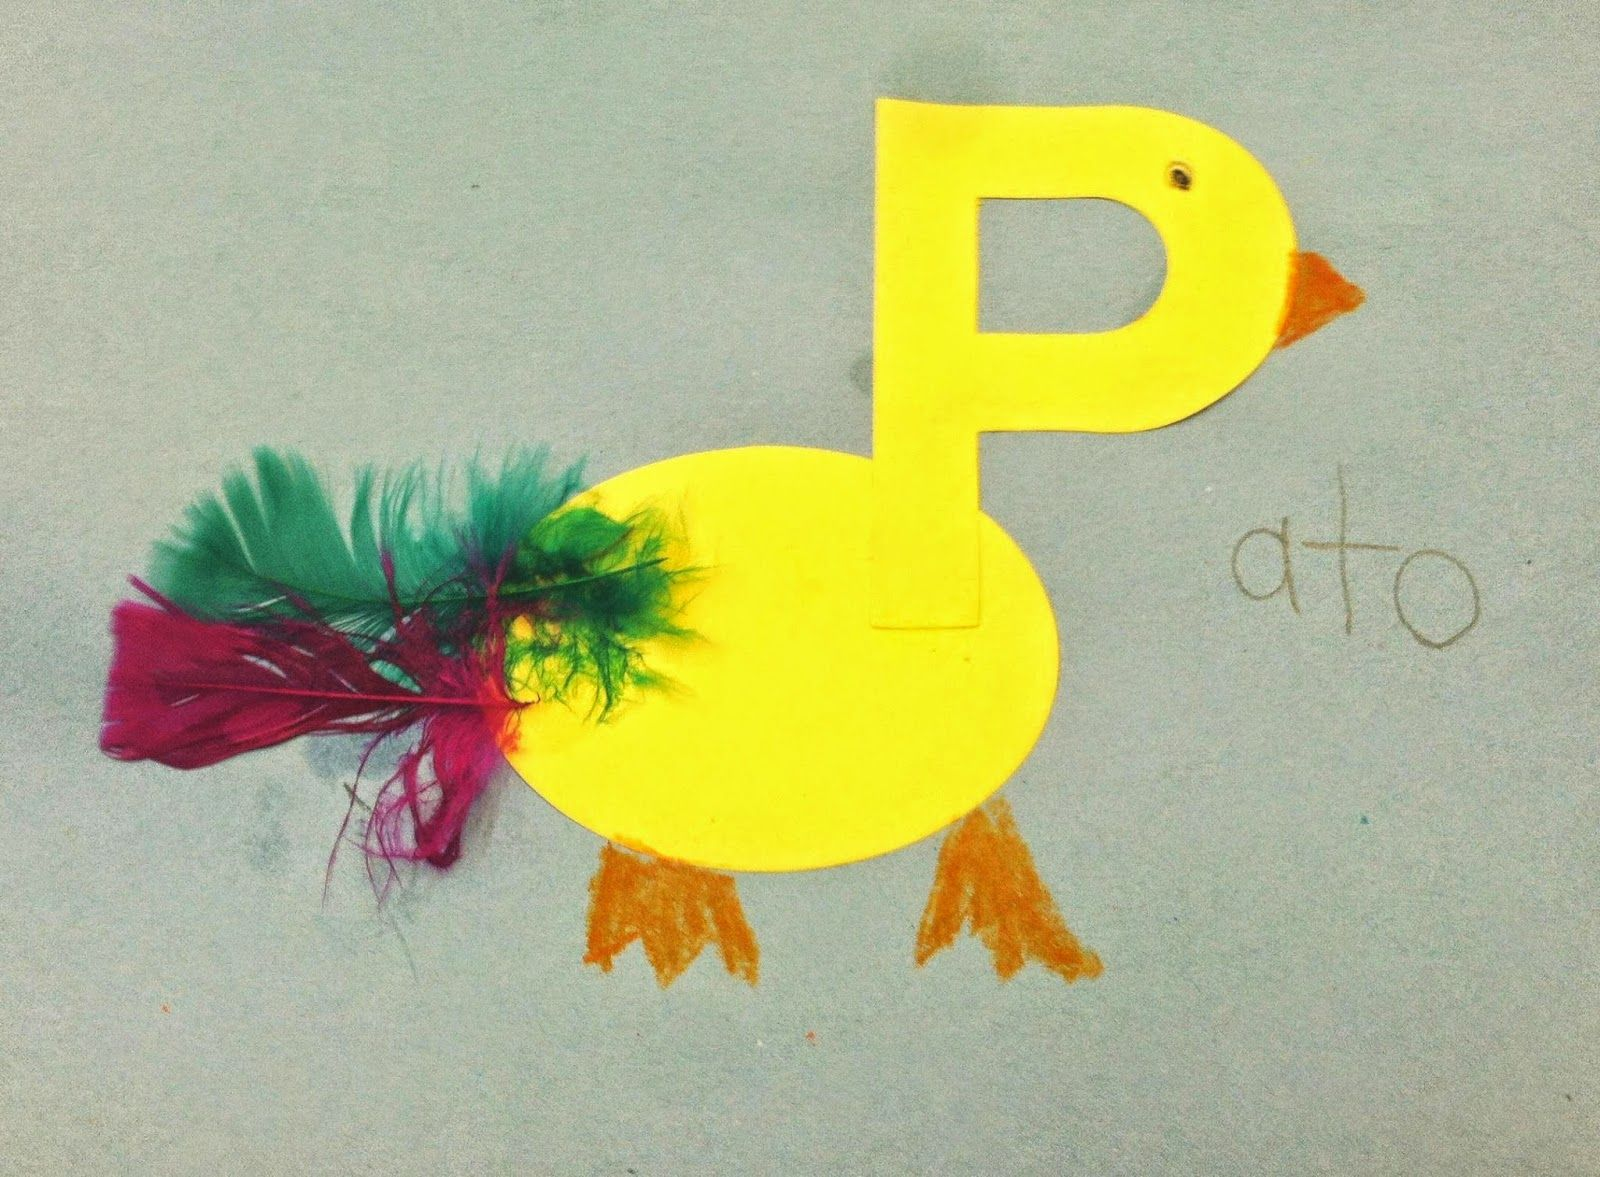 P is for Pato (duck)